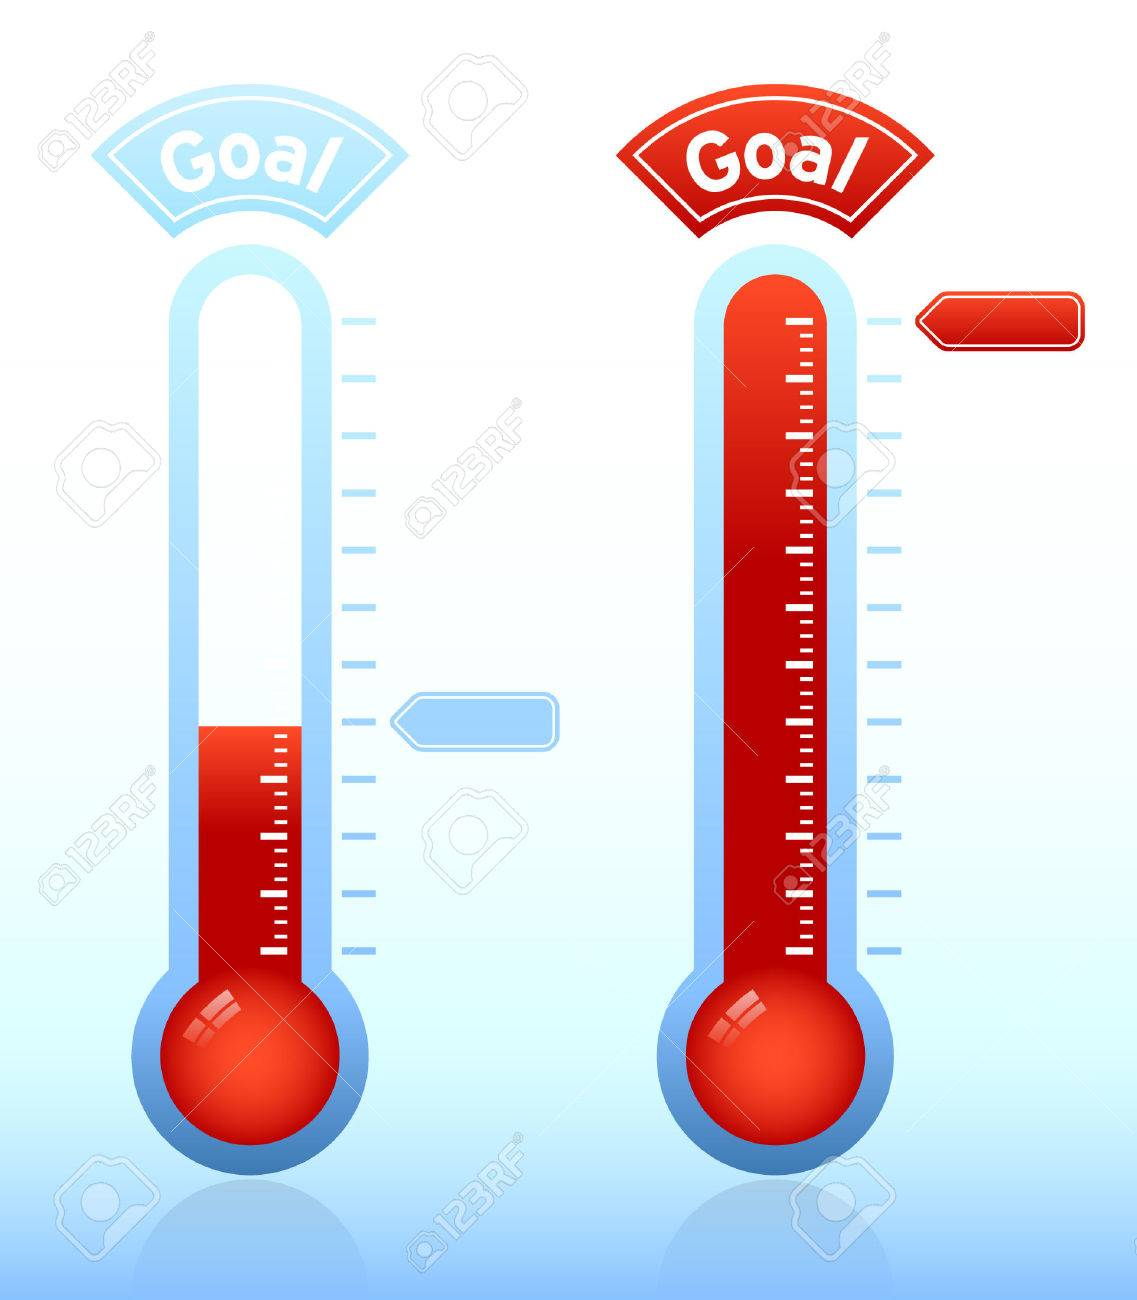 thermometer graphic showing progress towards goal stock vector 4089869